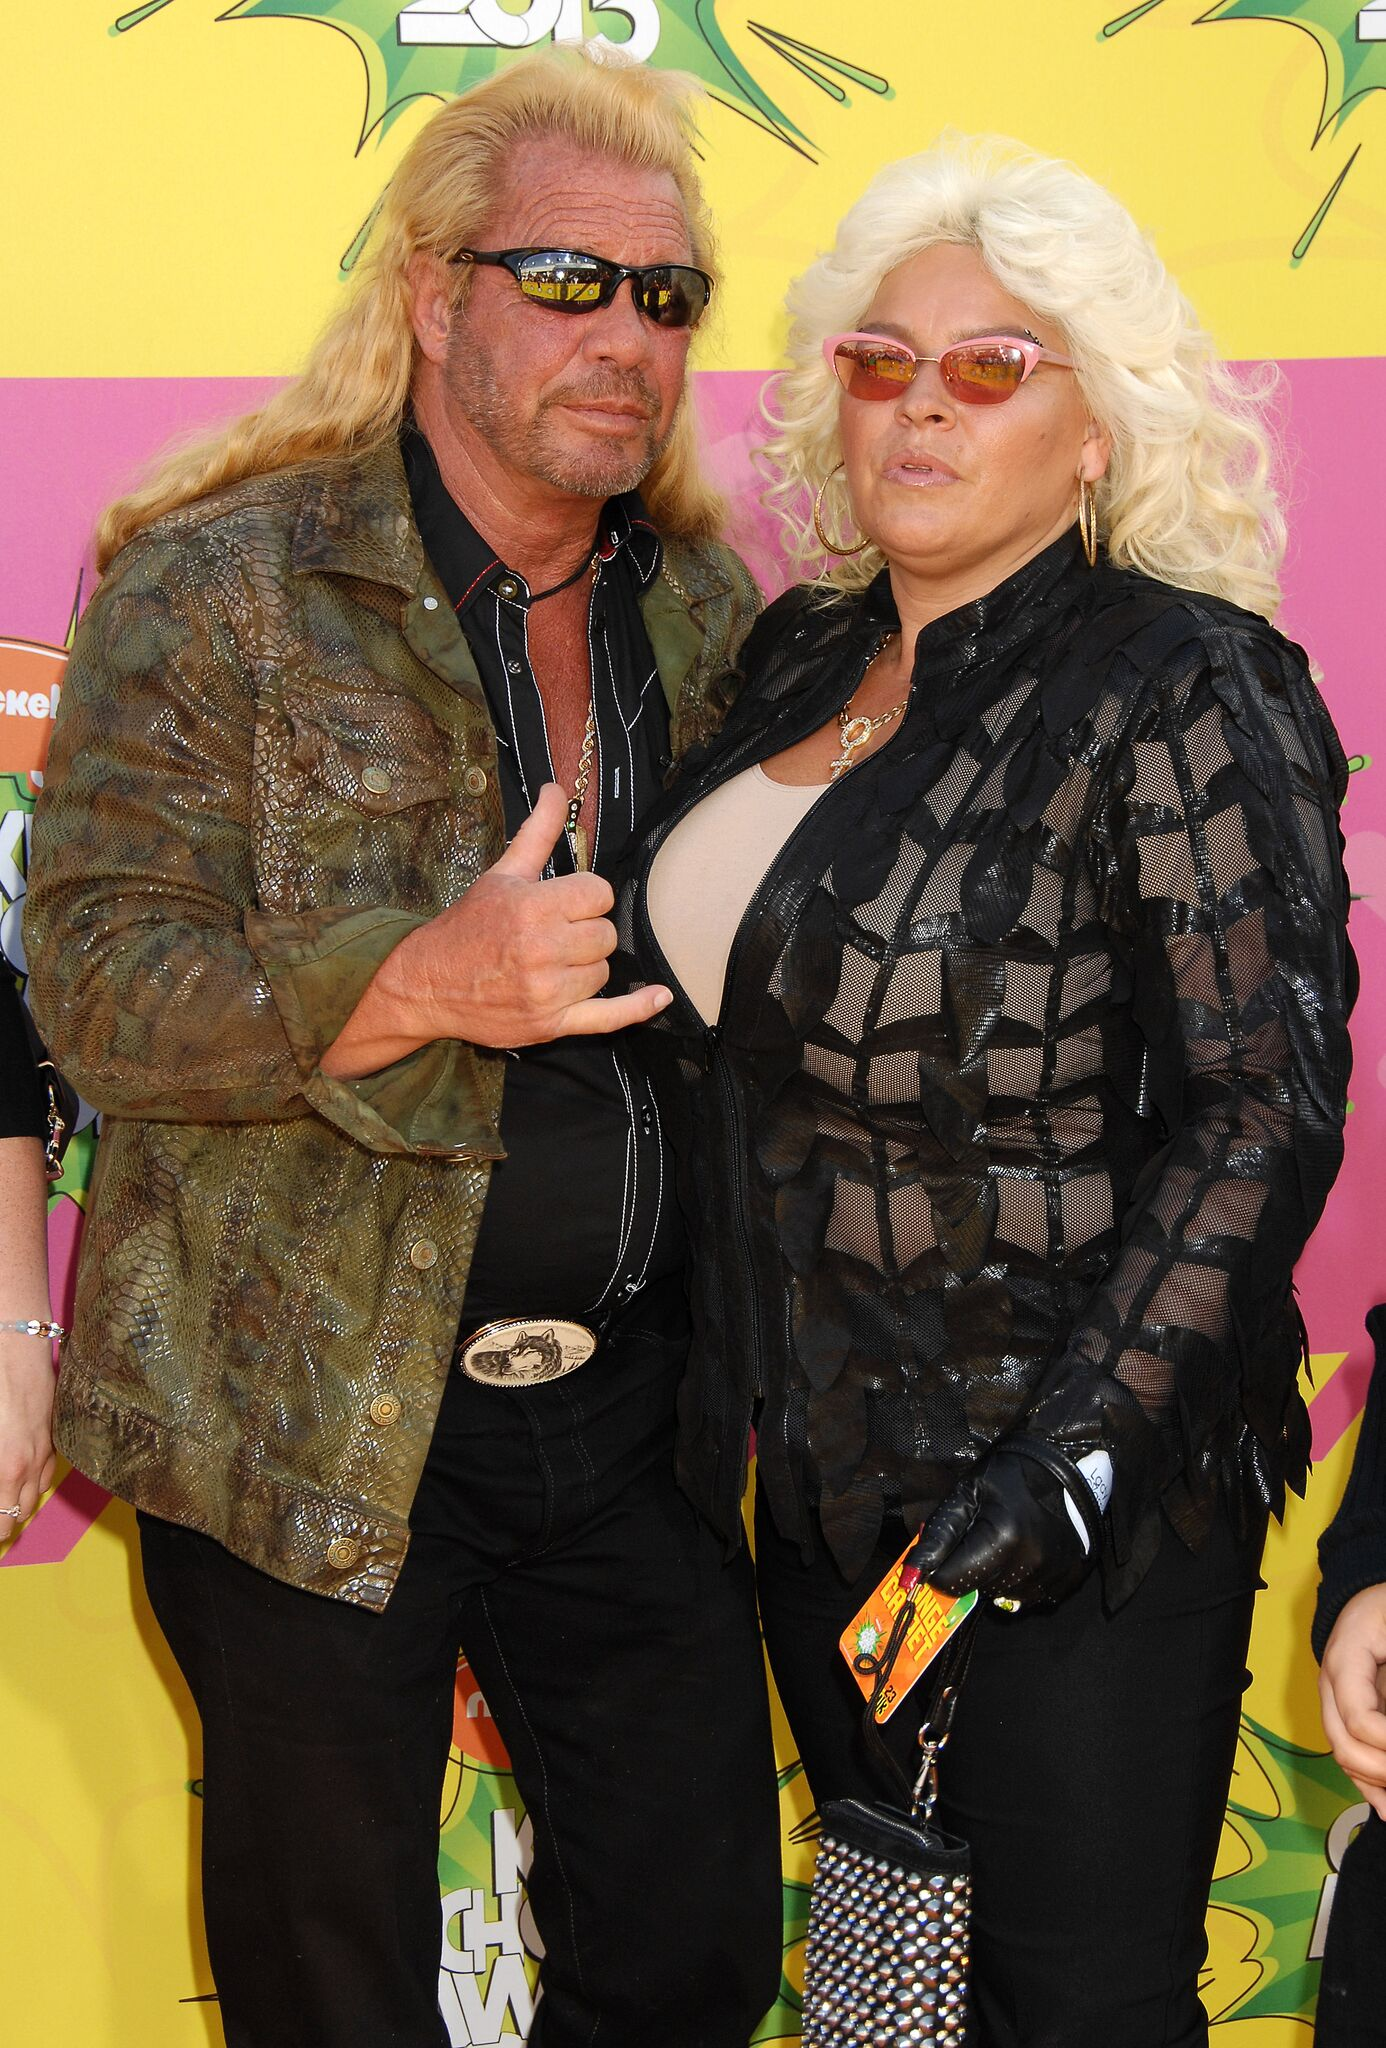 Duane Chapman, aka Dog the Bounty Hunter and Wife Beth arrives at the Nickelodeons 2013 Kids Choice Awards  | Shutterstock